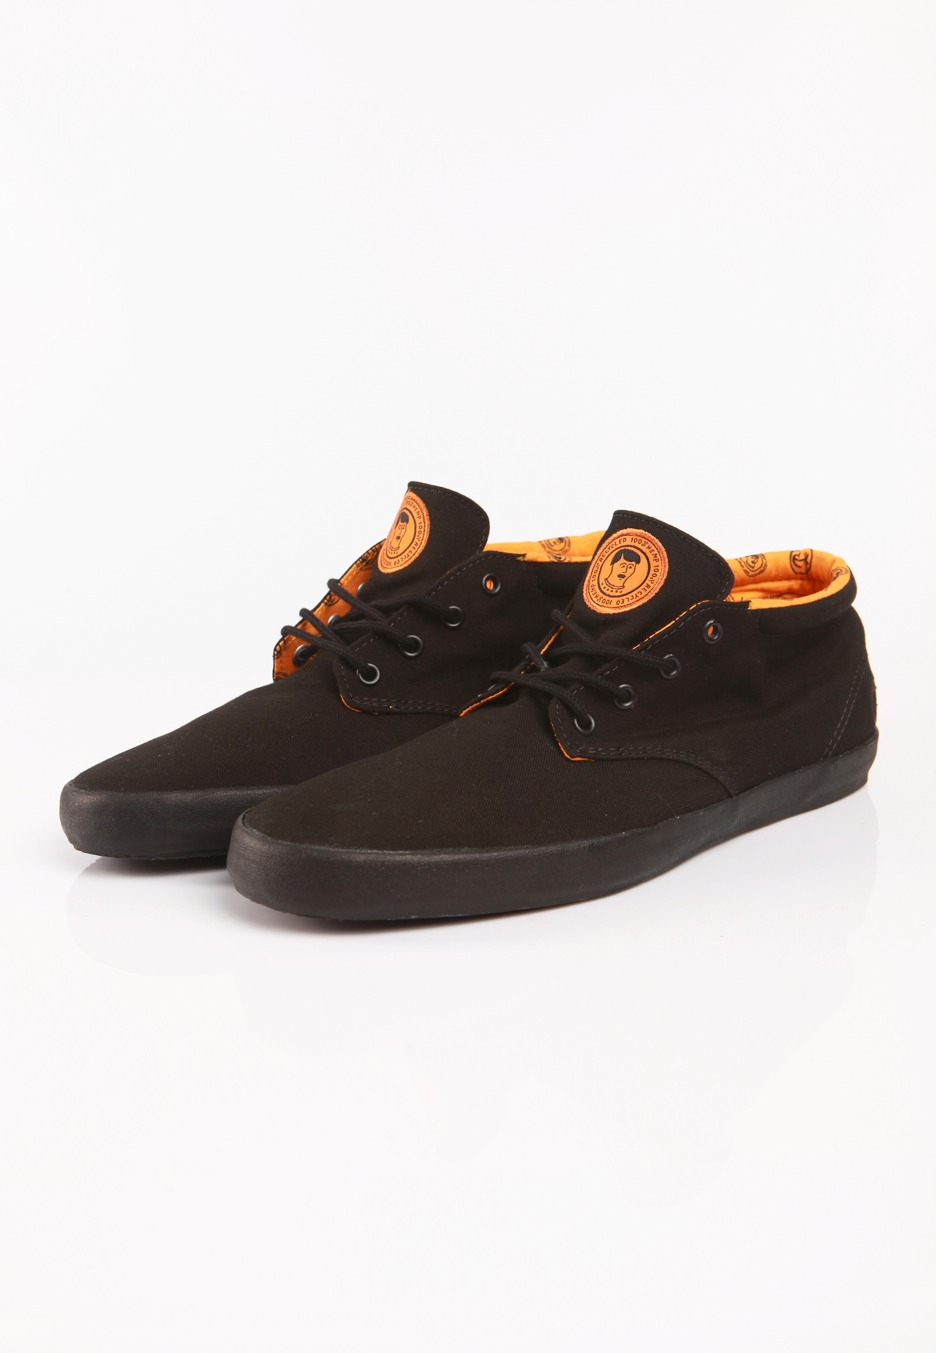 065b72cd50 ... Vans - Del Norte Captain Fin Black Radiant Yellow - Shoes ...